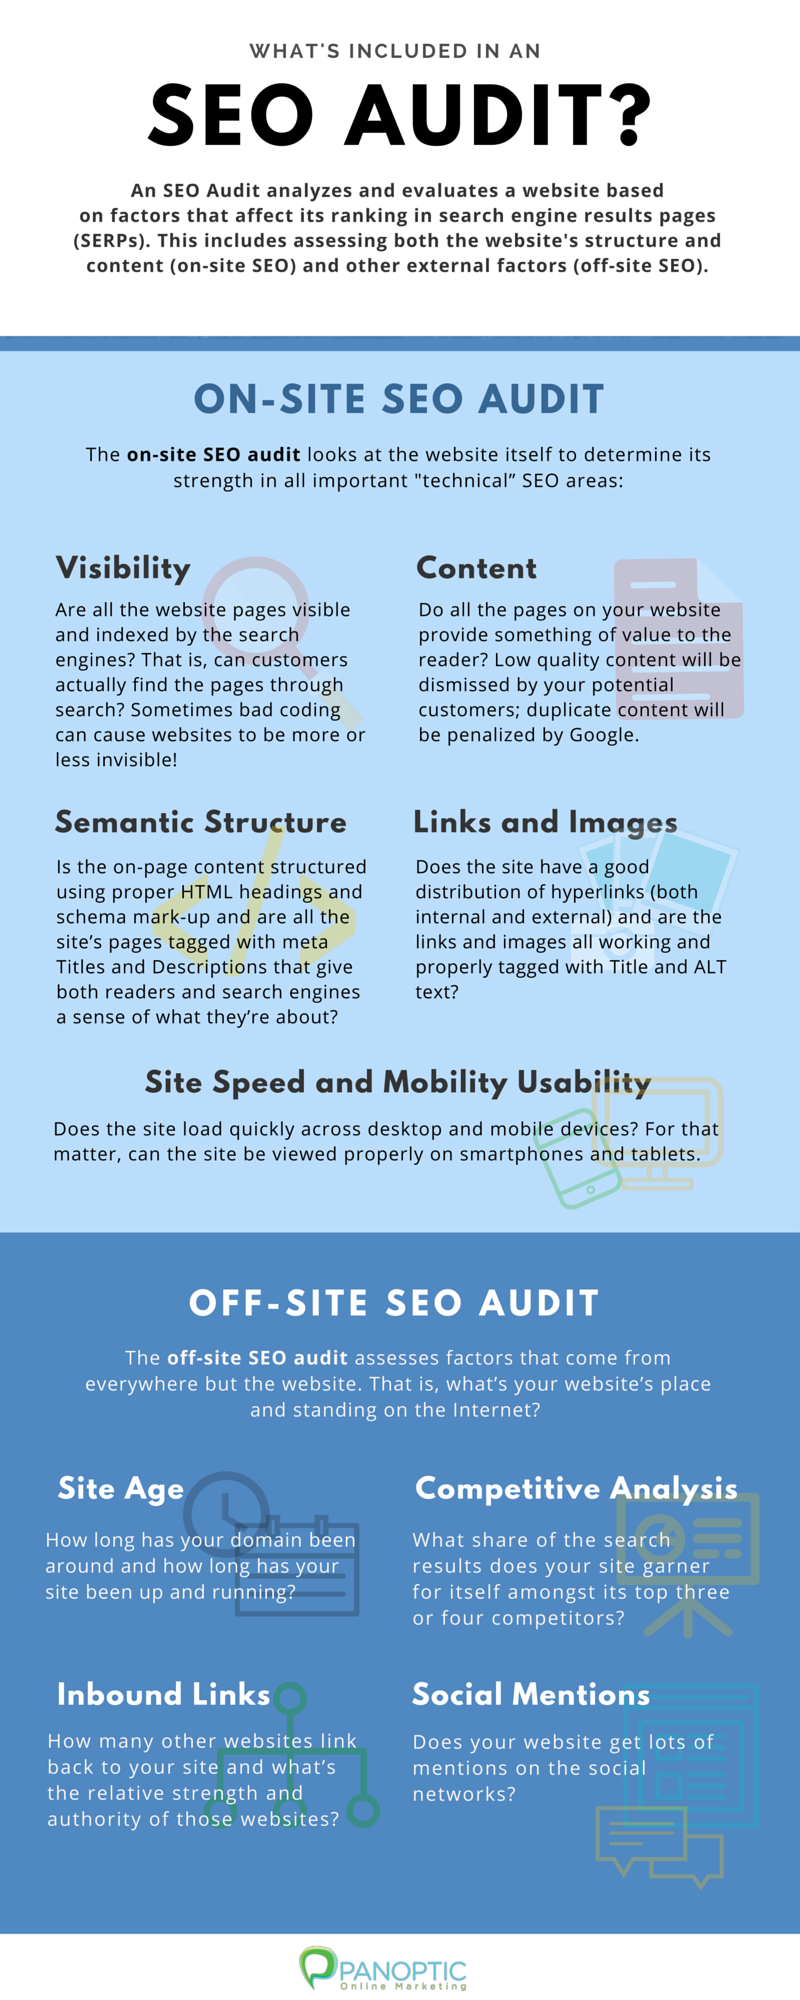 Panoptic Marketing SEO Audit Infographic